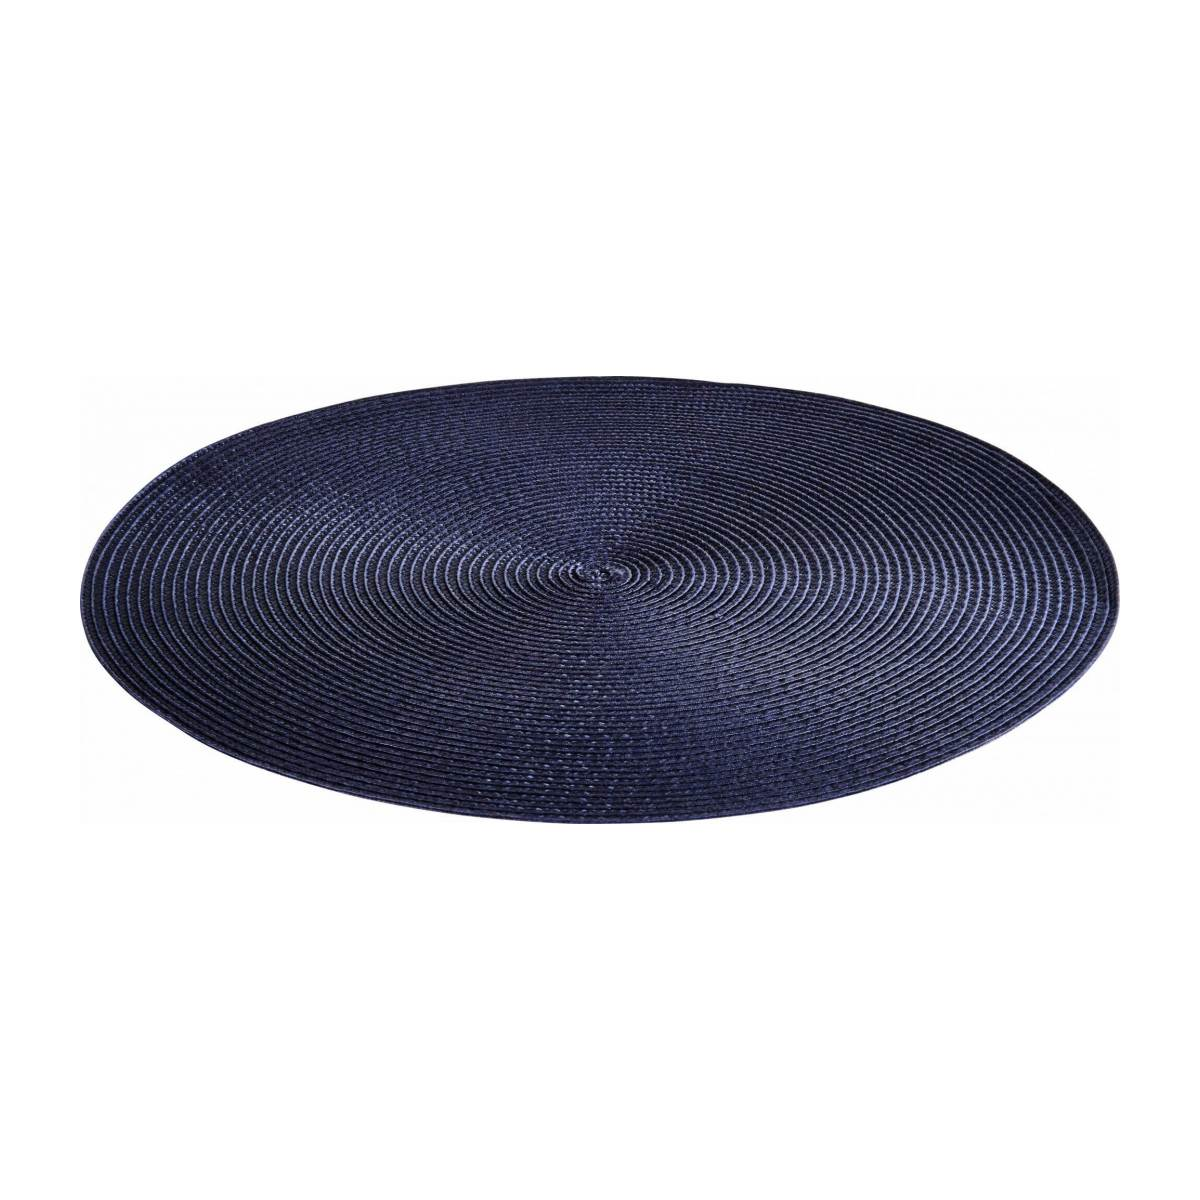 Set de table rond 38cm bleu n°1